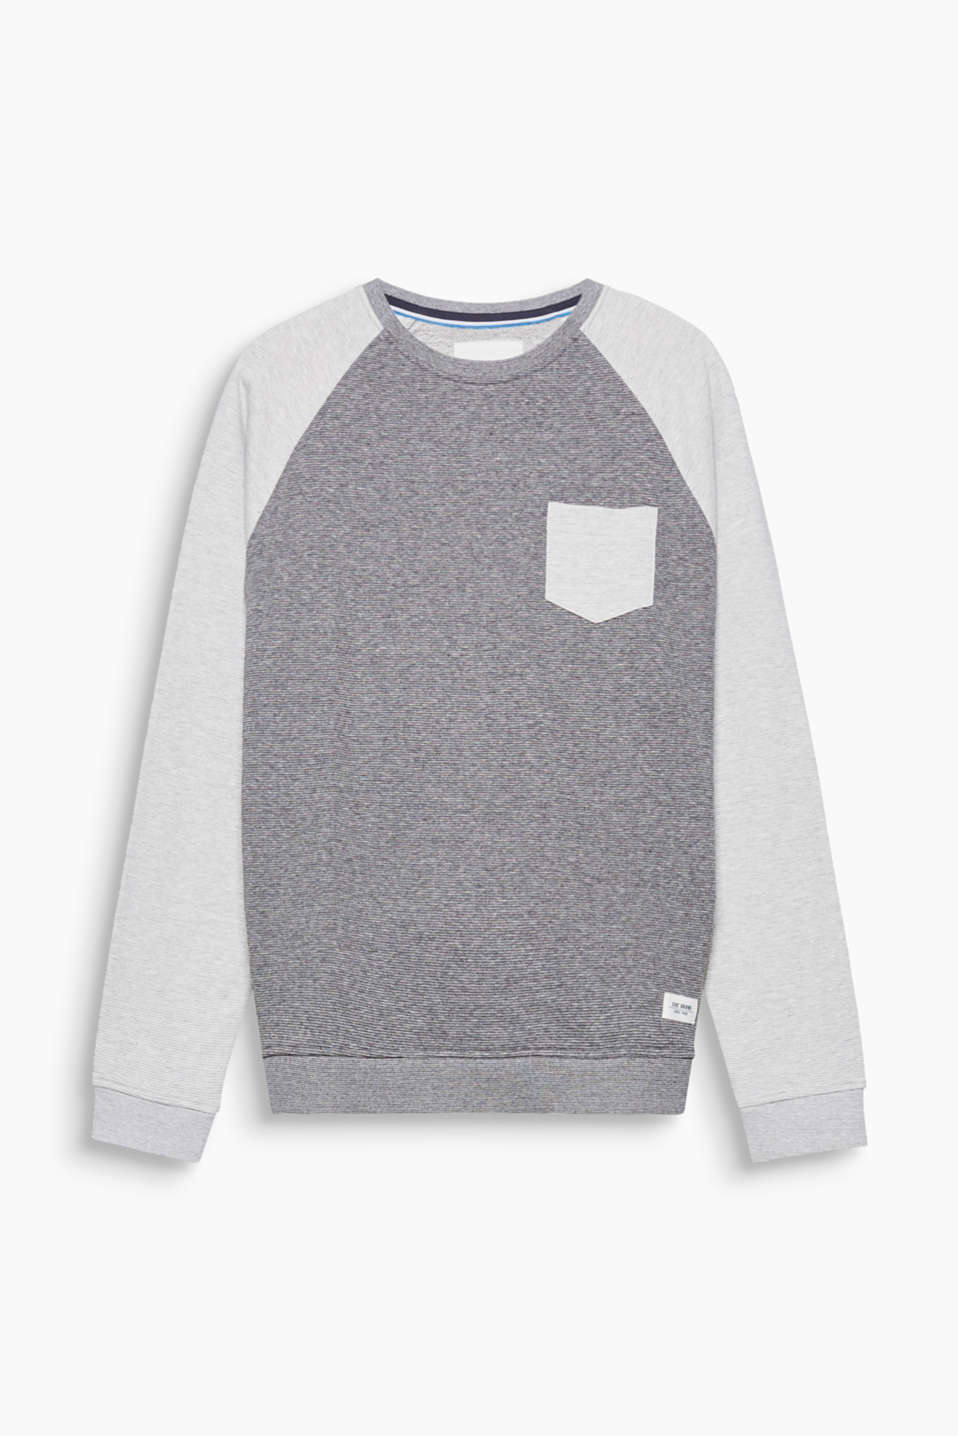 Raglan sleeves in a contrasting colour and fine melange stripes give this sweatshirt a cool, casual look.